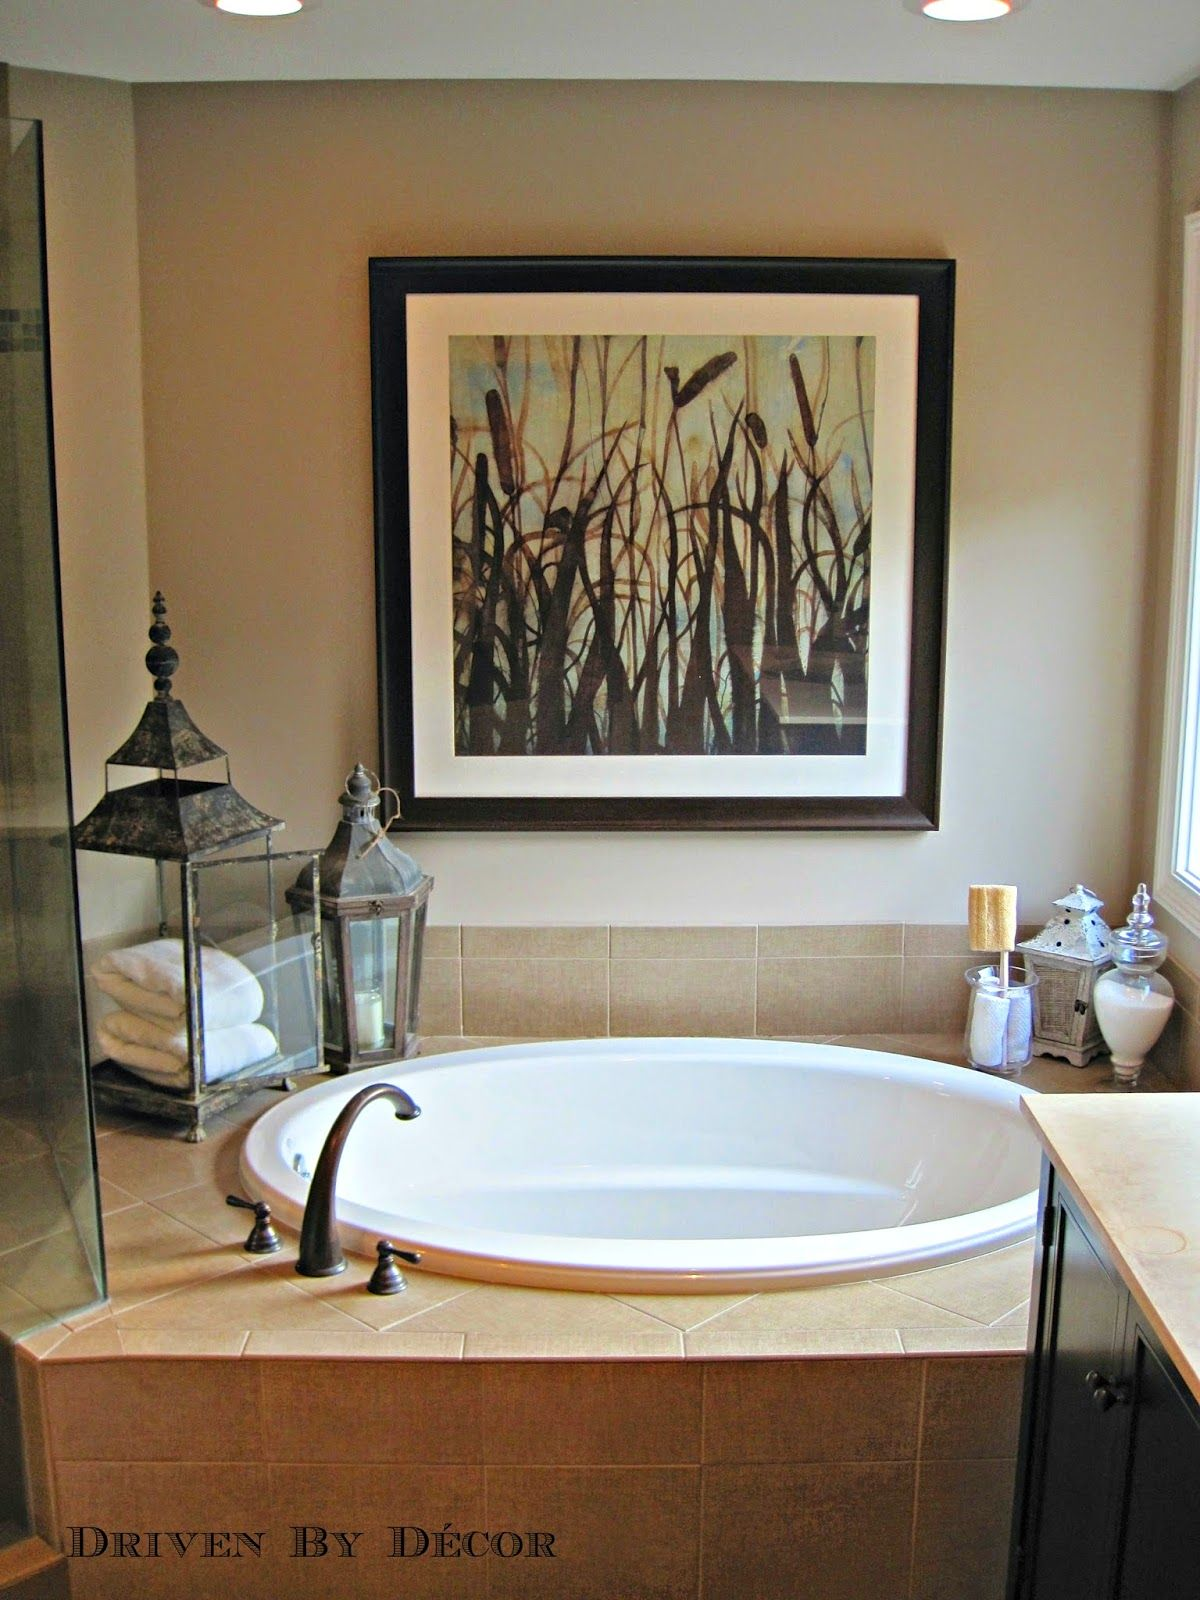 Master bedroom without bathroom  House Tour Master Bedroom u Bathroom  Master bedroom bathroom